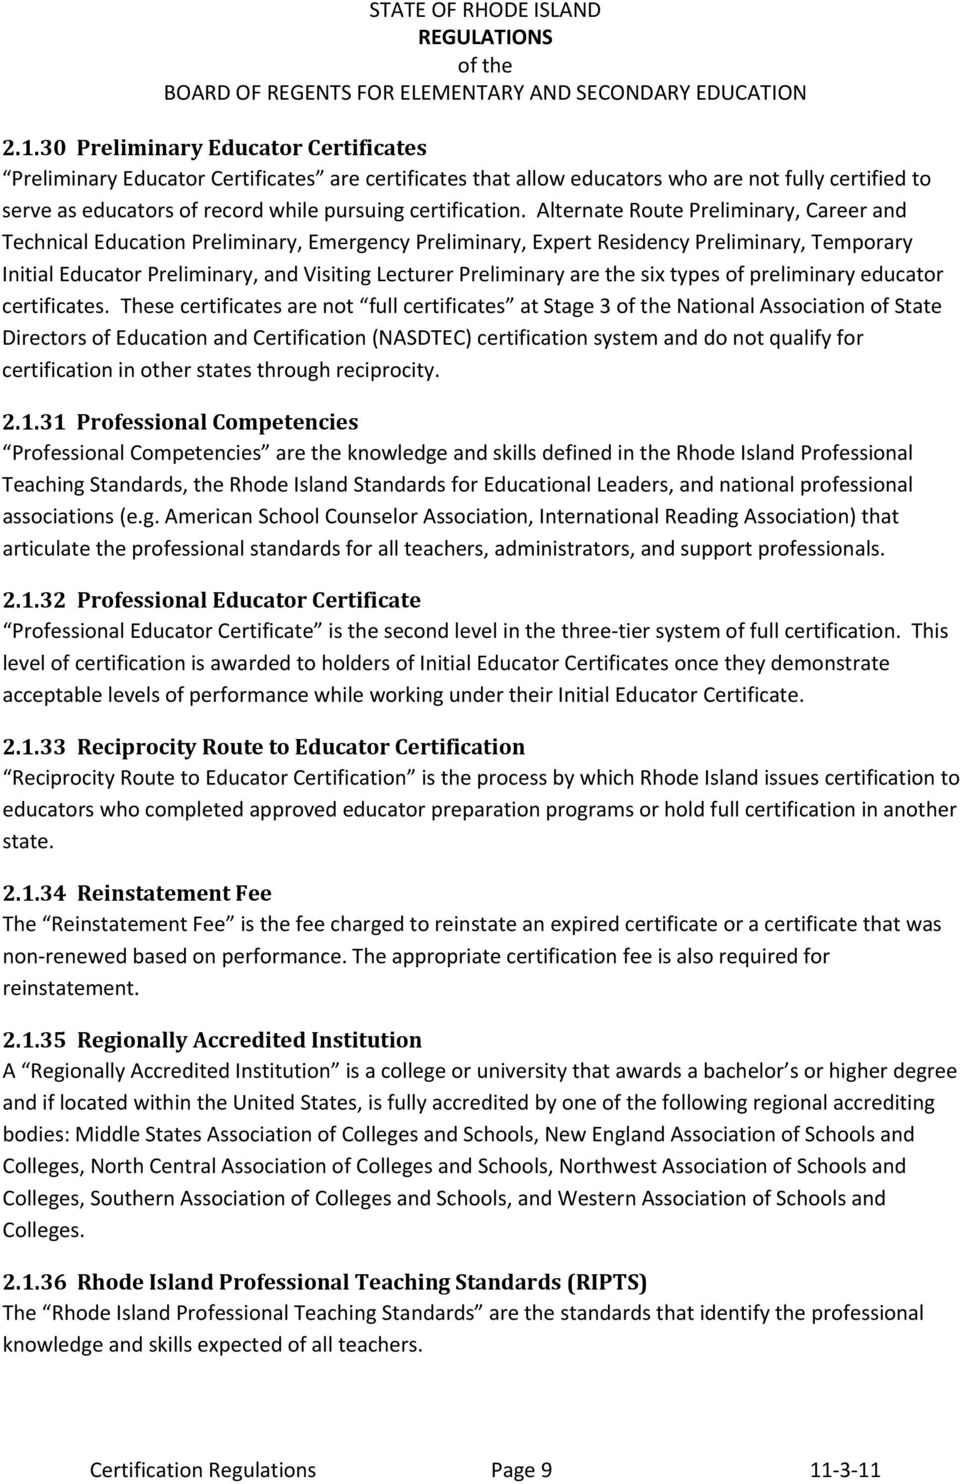 Alternate Route Preliminary, Career and Technical Education Preliminary, Emergency Preliminary, Expert Residency Preliminary, Temporary Initial Educator Preliminary, and Visiting Lecturer Preliminary